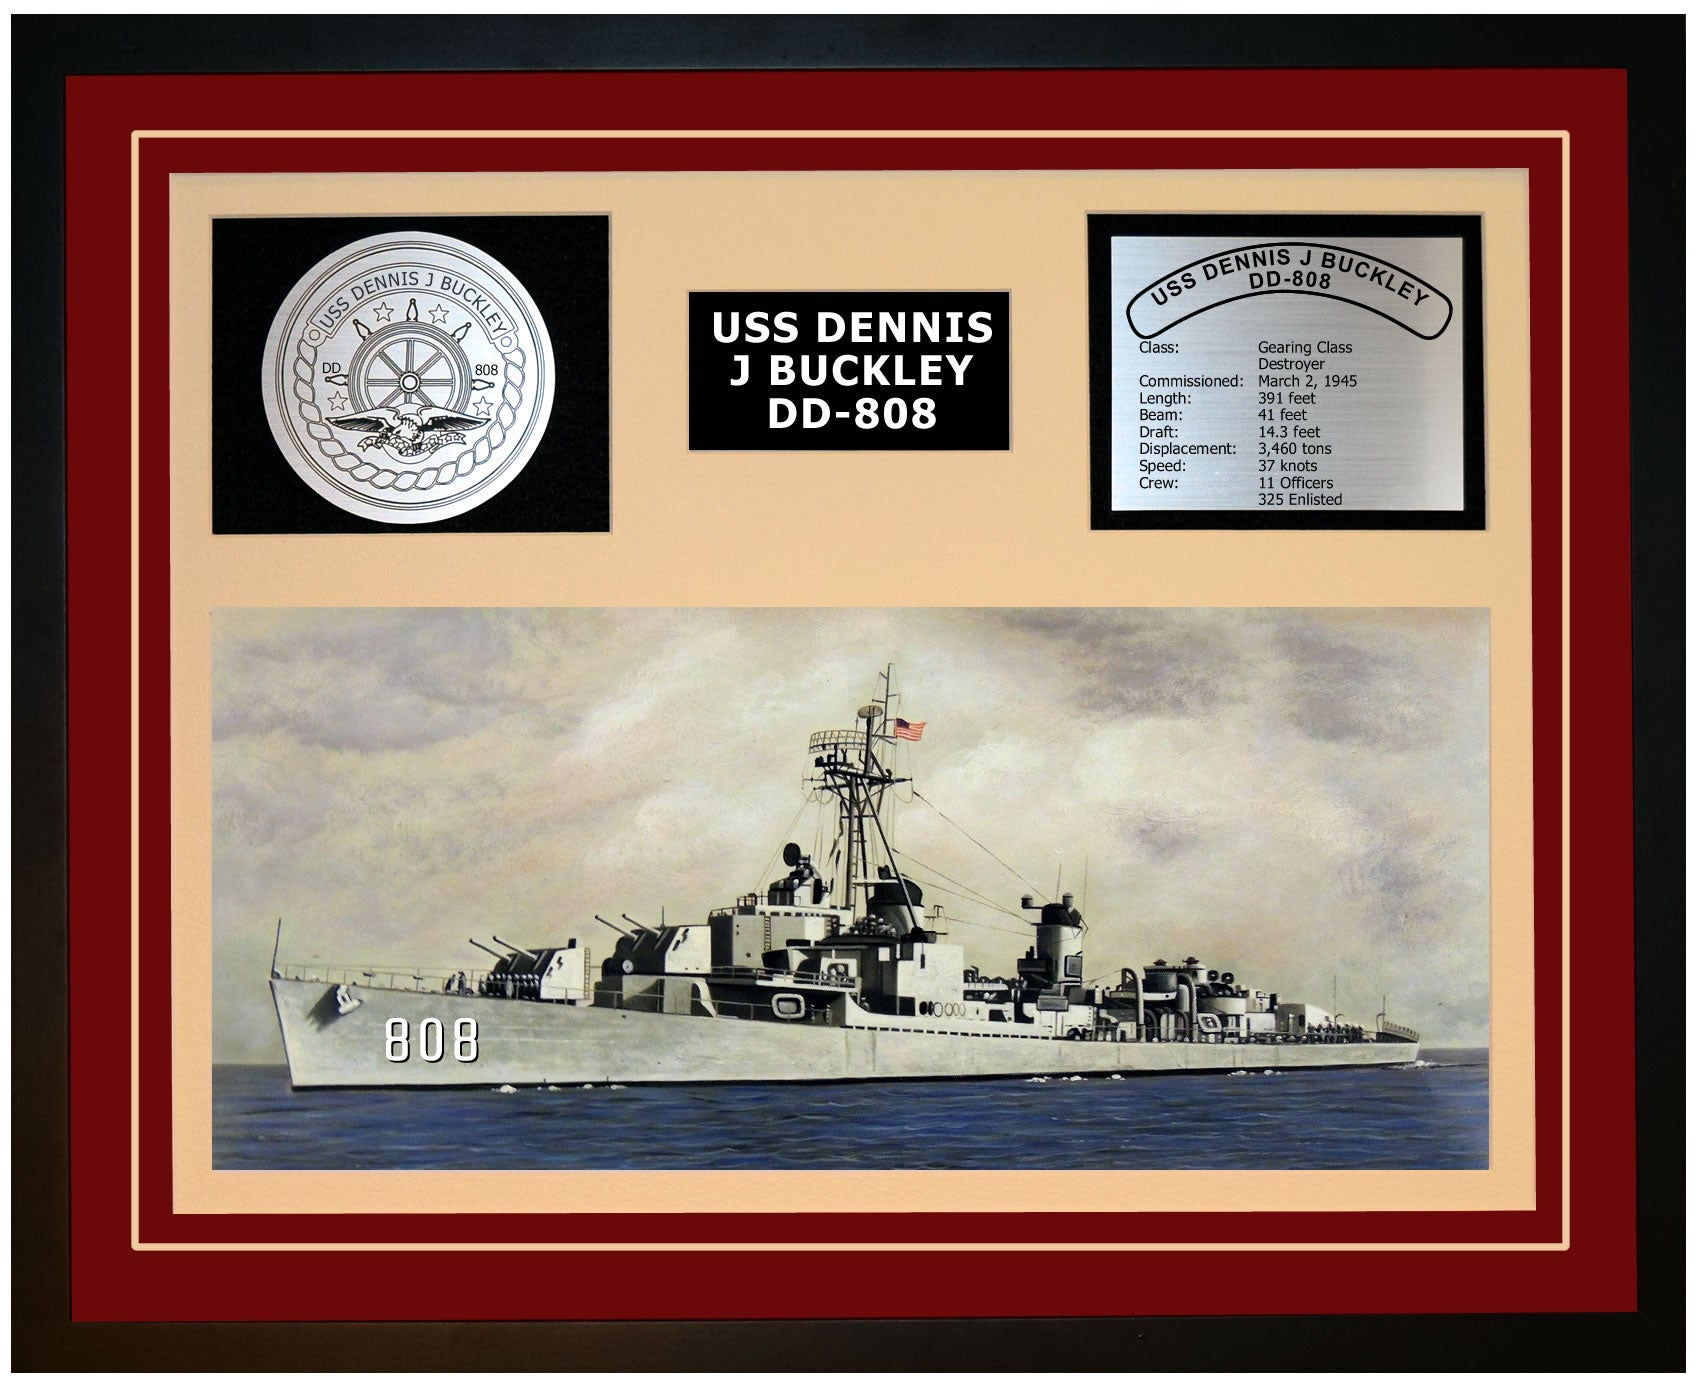 USS DENNIS J BUCKLEY DD-808 Framed Navy Ship Display Burgundy